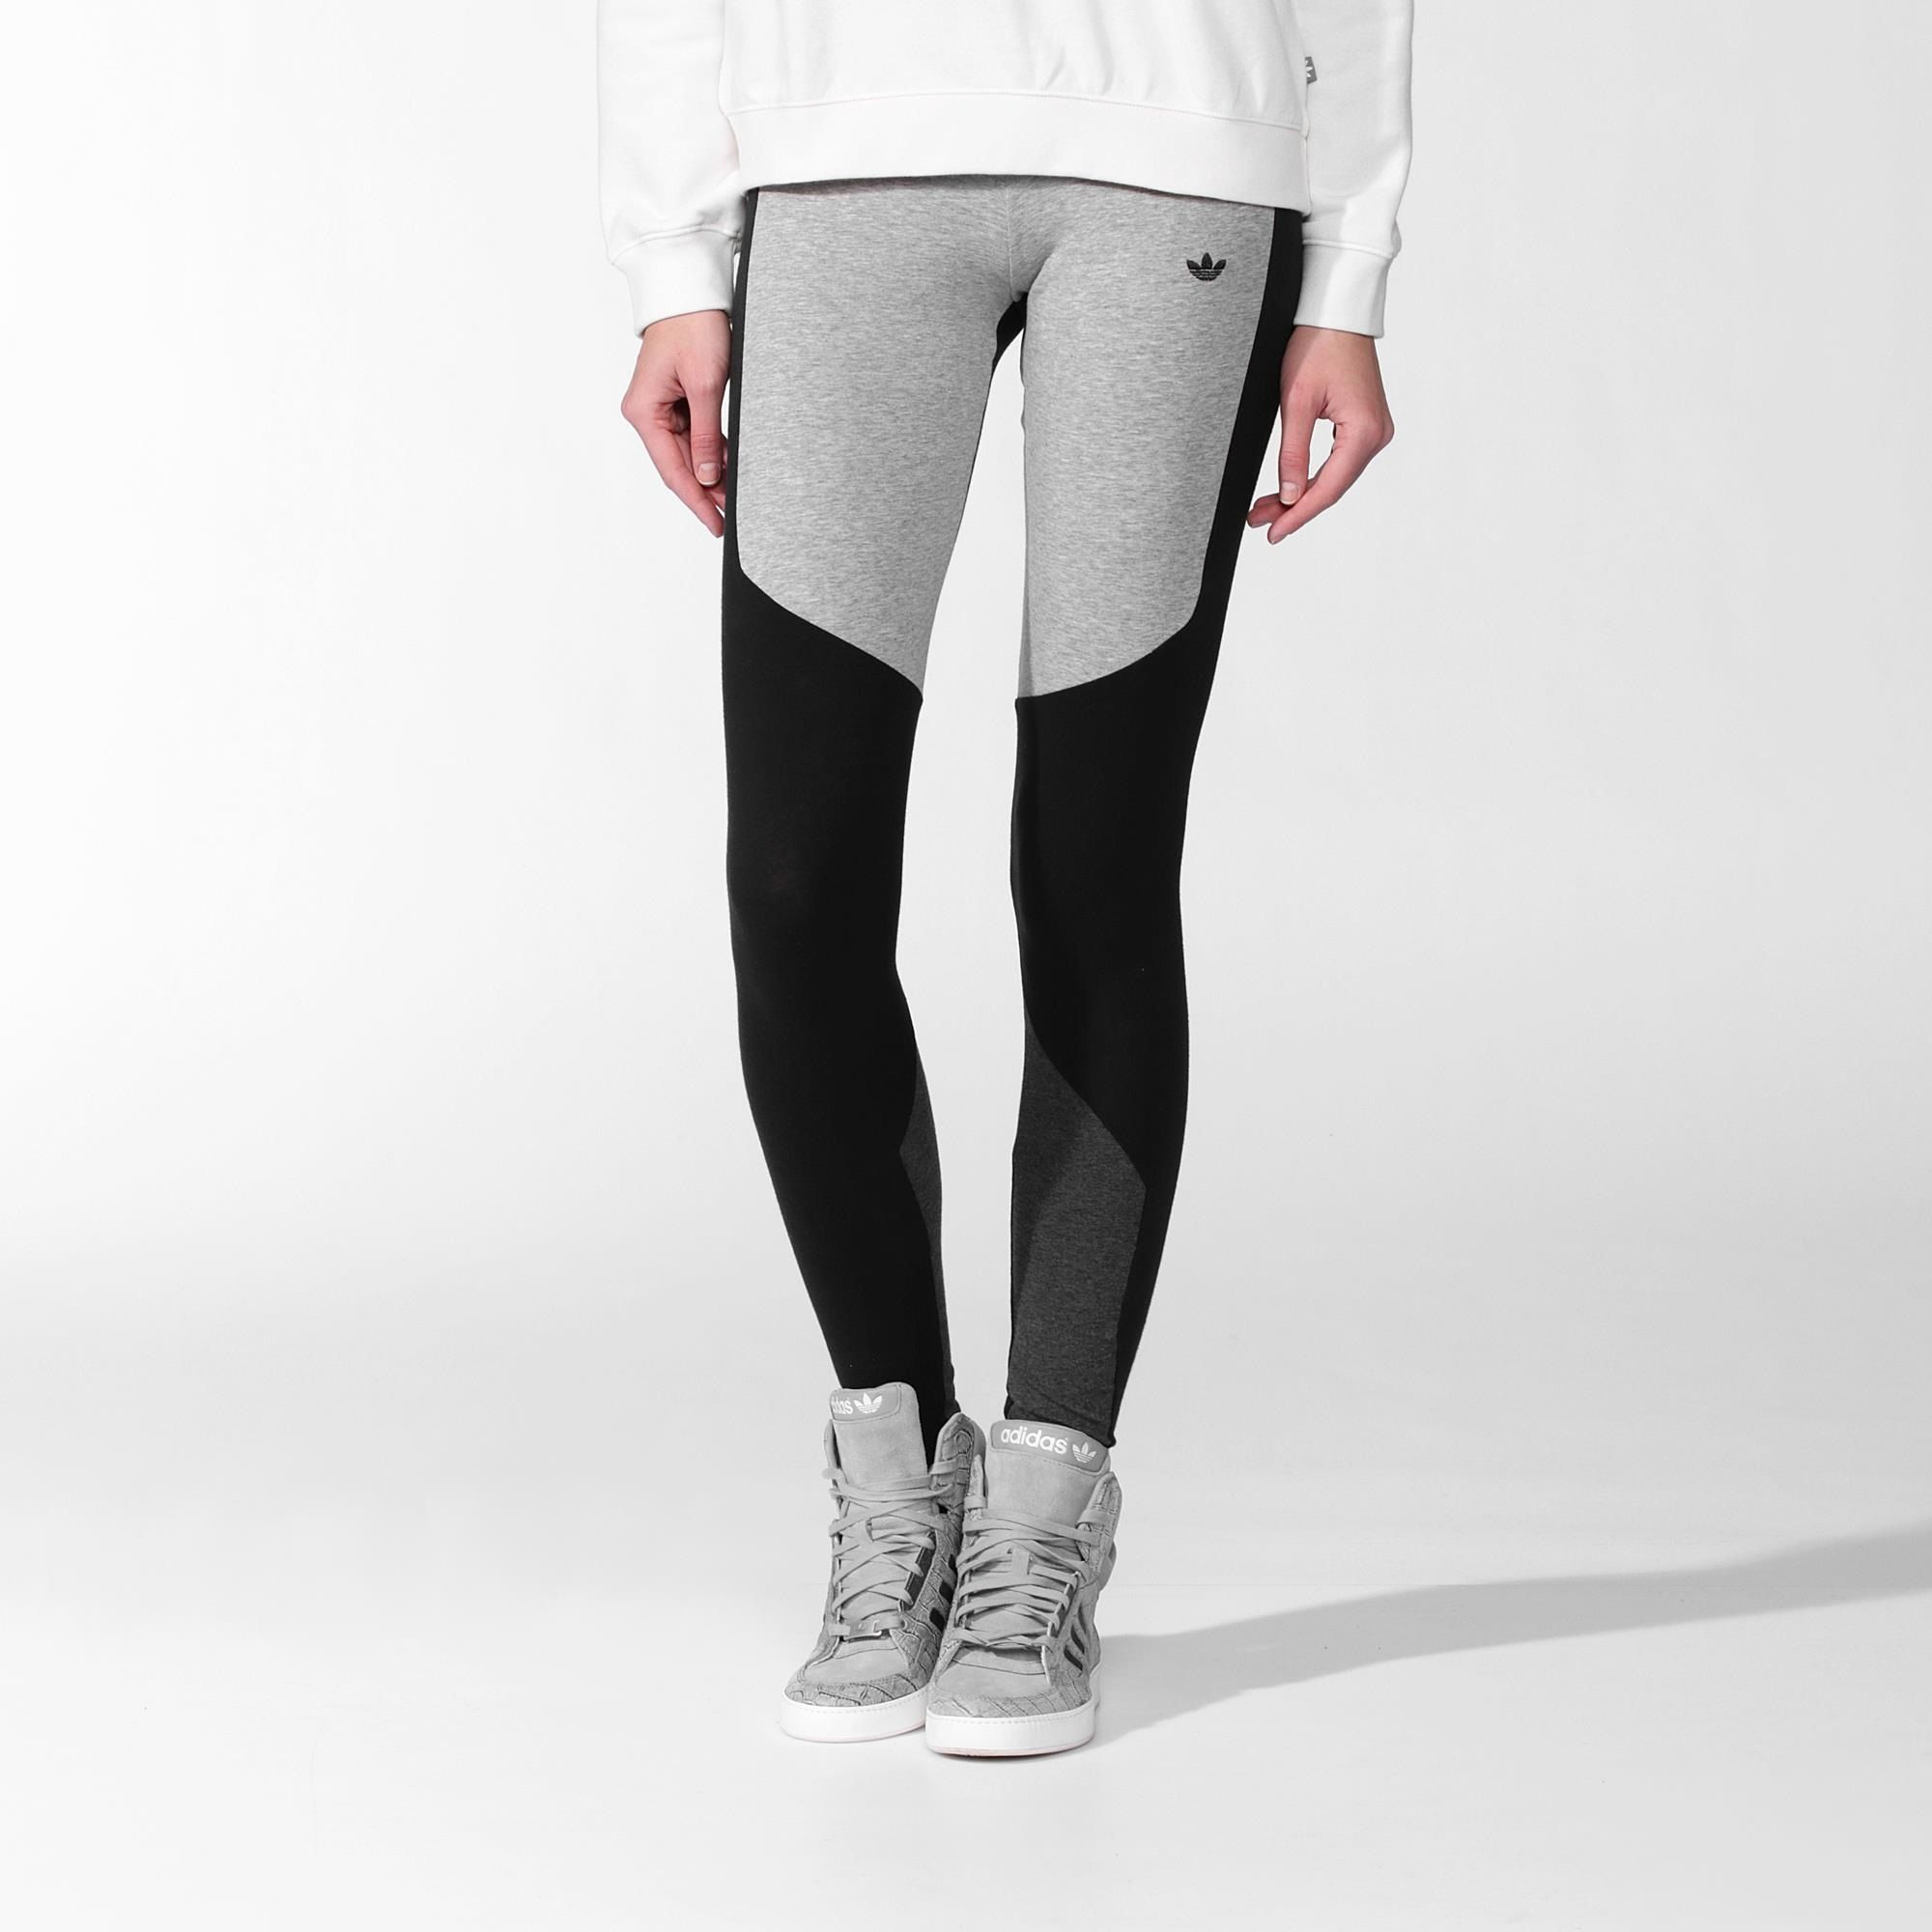 adidas shoes new collections of leggings outfits 607429